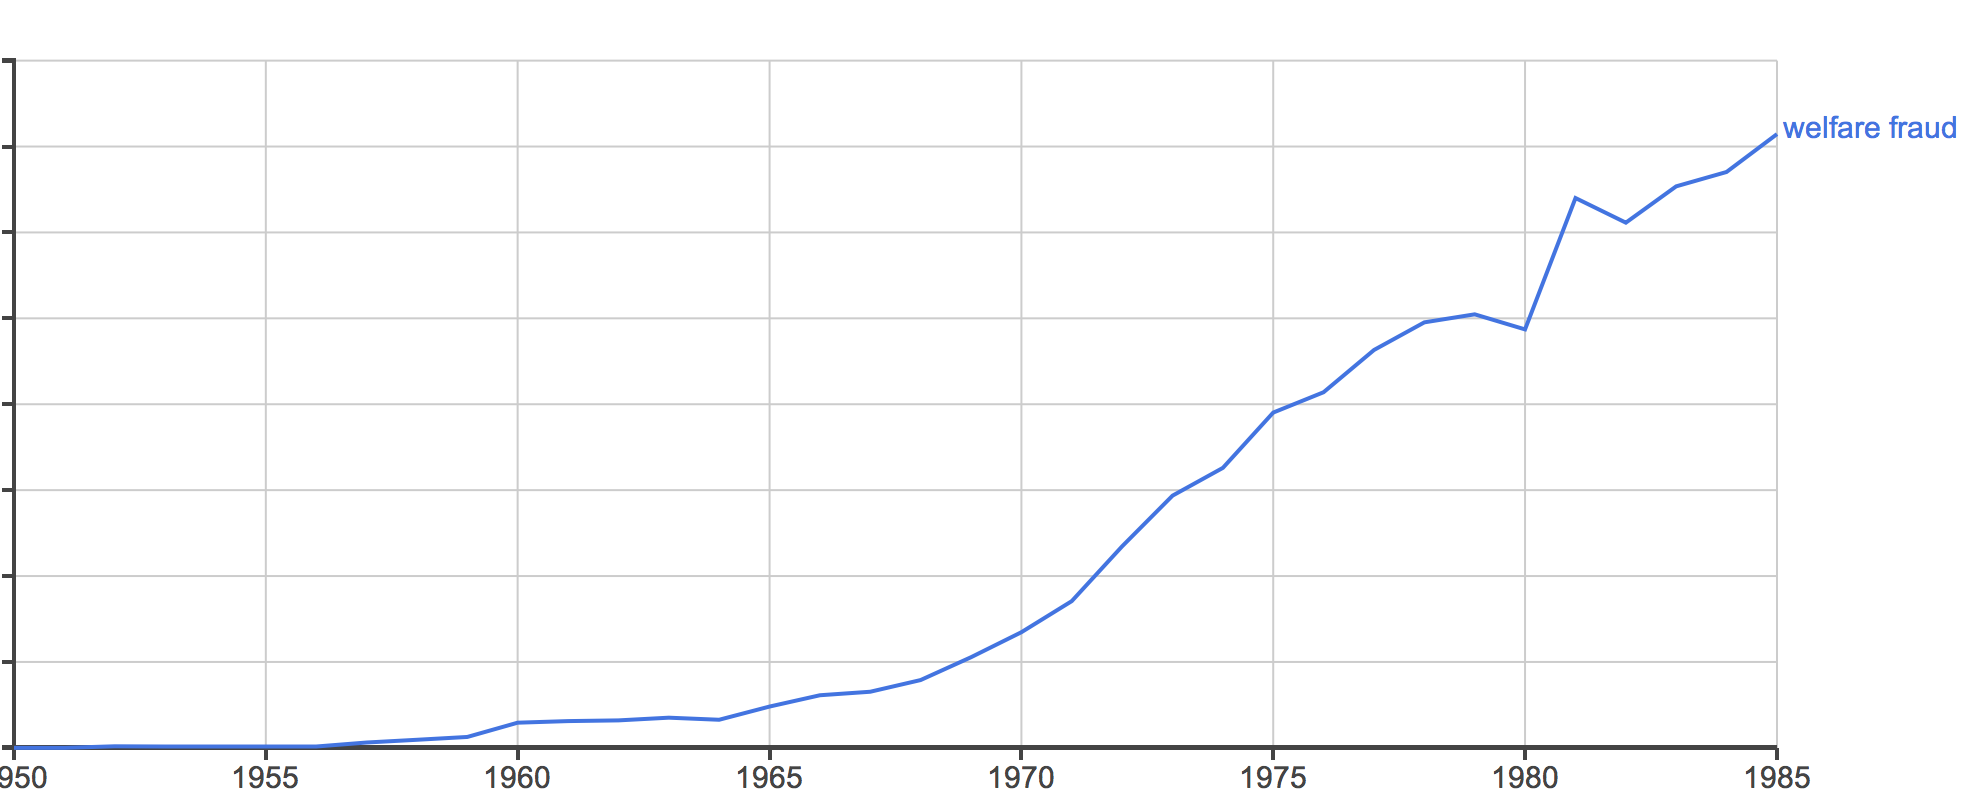 welfare fraud 1950-1985 ngram